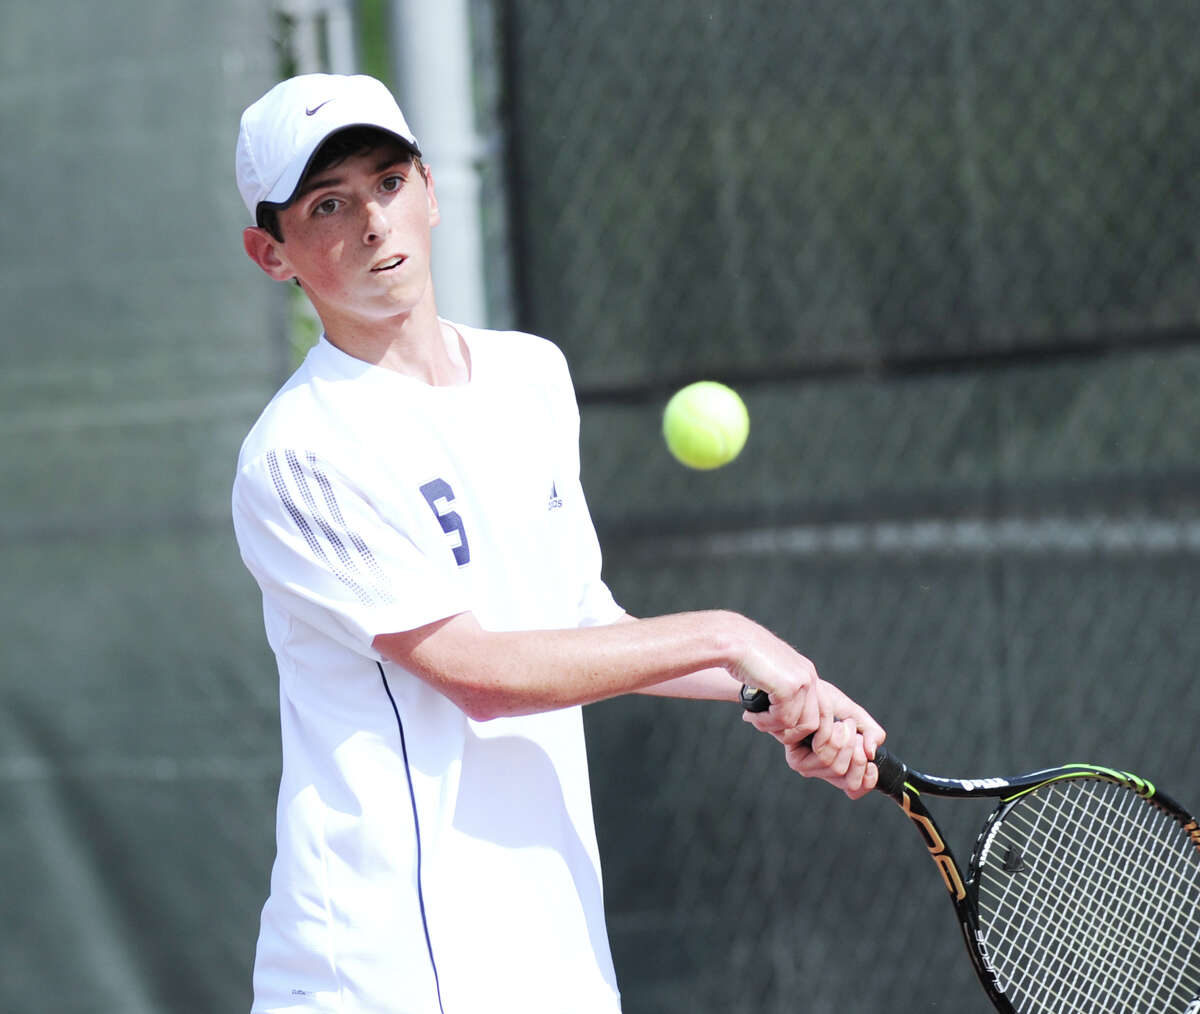 Baxter Stein of Staples in his match against Blake Niehaus of Greenwich during the FCIAC boys tennis championship between Staples High School and Greenwich High School at Wilton High School, Tuesday, May 29, 2012. Greenwich defeated Staples 4-0 to win the championship.